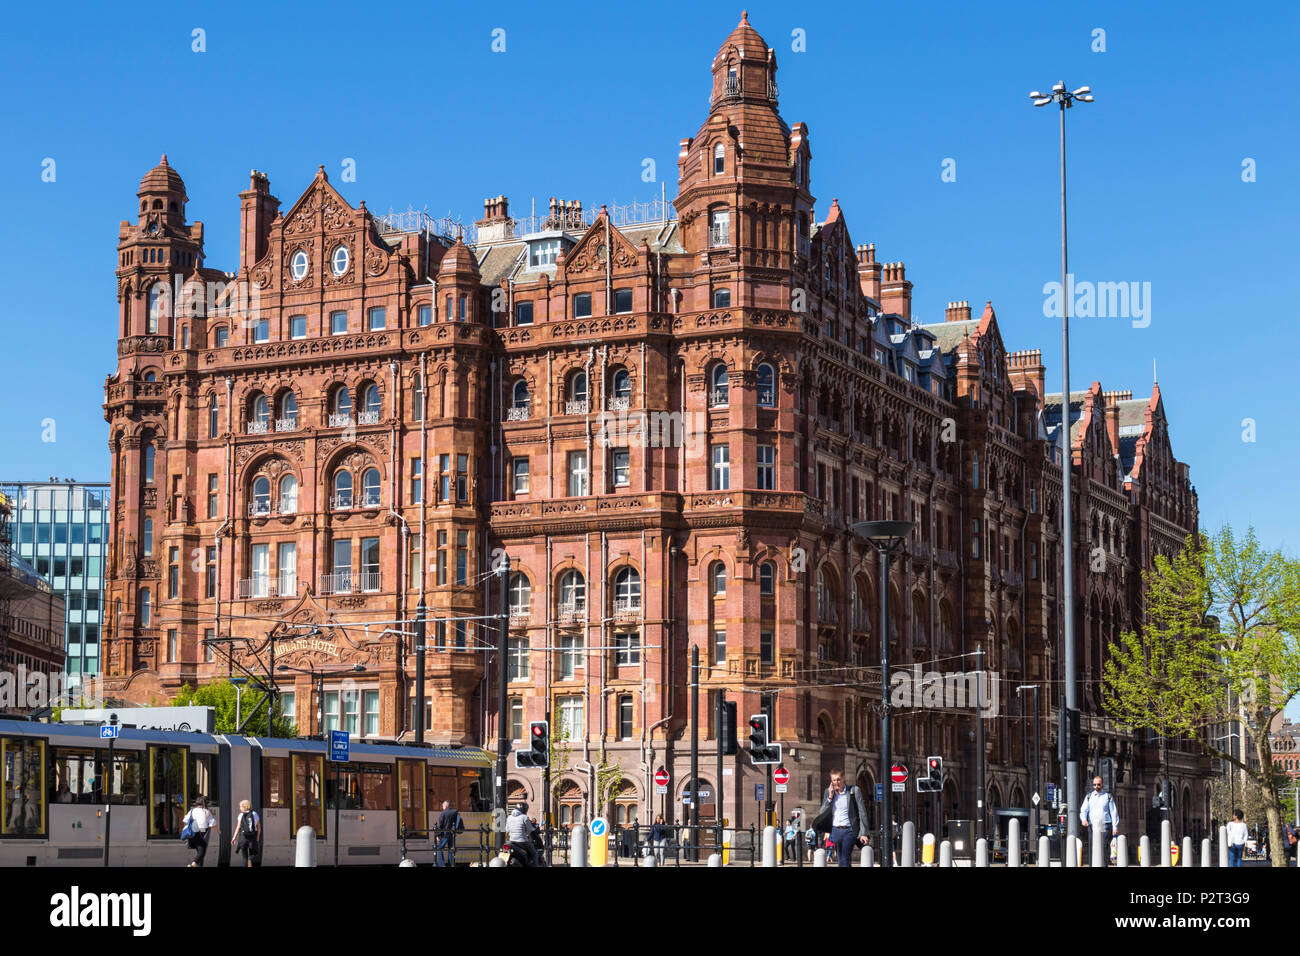 England Manchester England greater Manchester City centre city center midland hotel manchester city centre uk - Stock Image